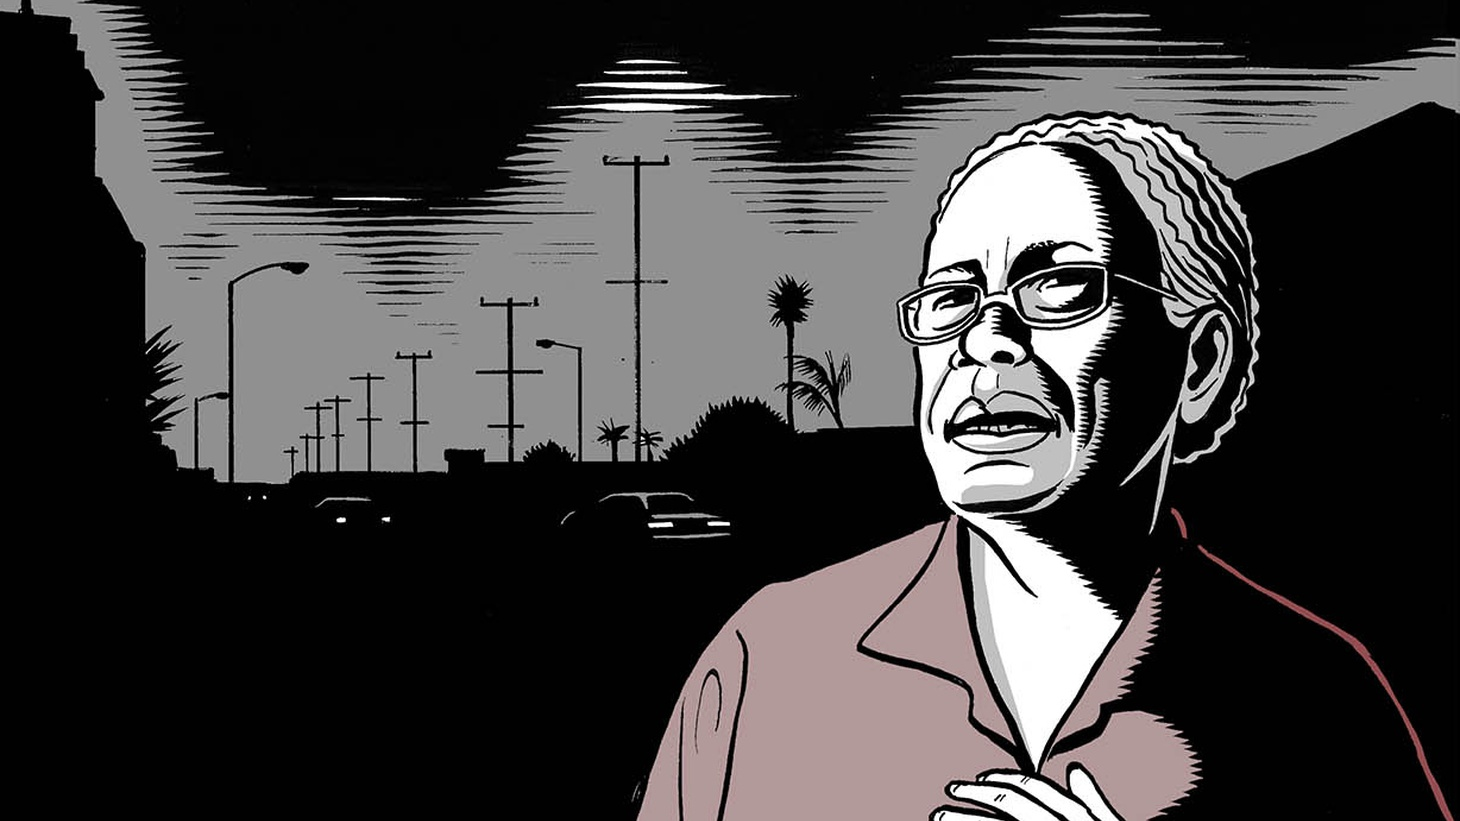 Lita Herron, a 69-year-old grandmother of six, witnessed repeated shootings in her community. But her fear turned to anger and then to action.